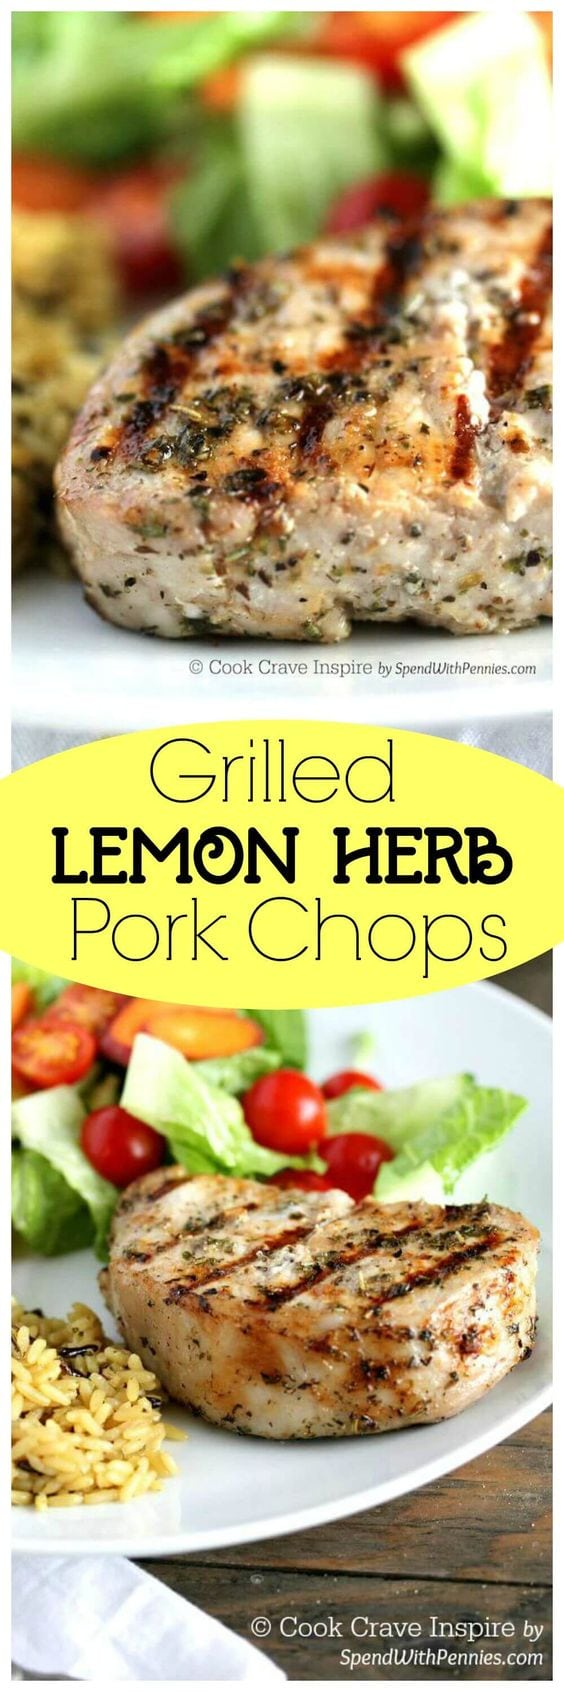 Lemon Herb Grilled Pork Chops - {RECIPE ABOVE} Every cookout needs a good grill recipe. This Lemon Herb Grilled Pork Chops recipe has star worthy seasoning that is delicious and easy to prepare.